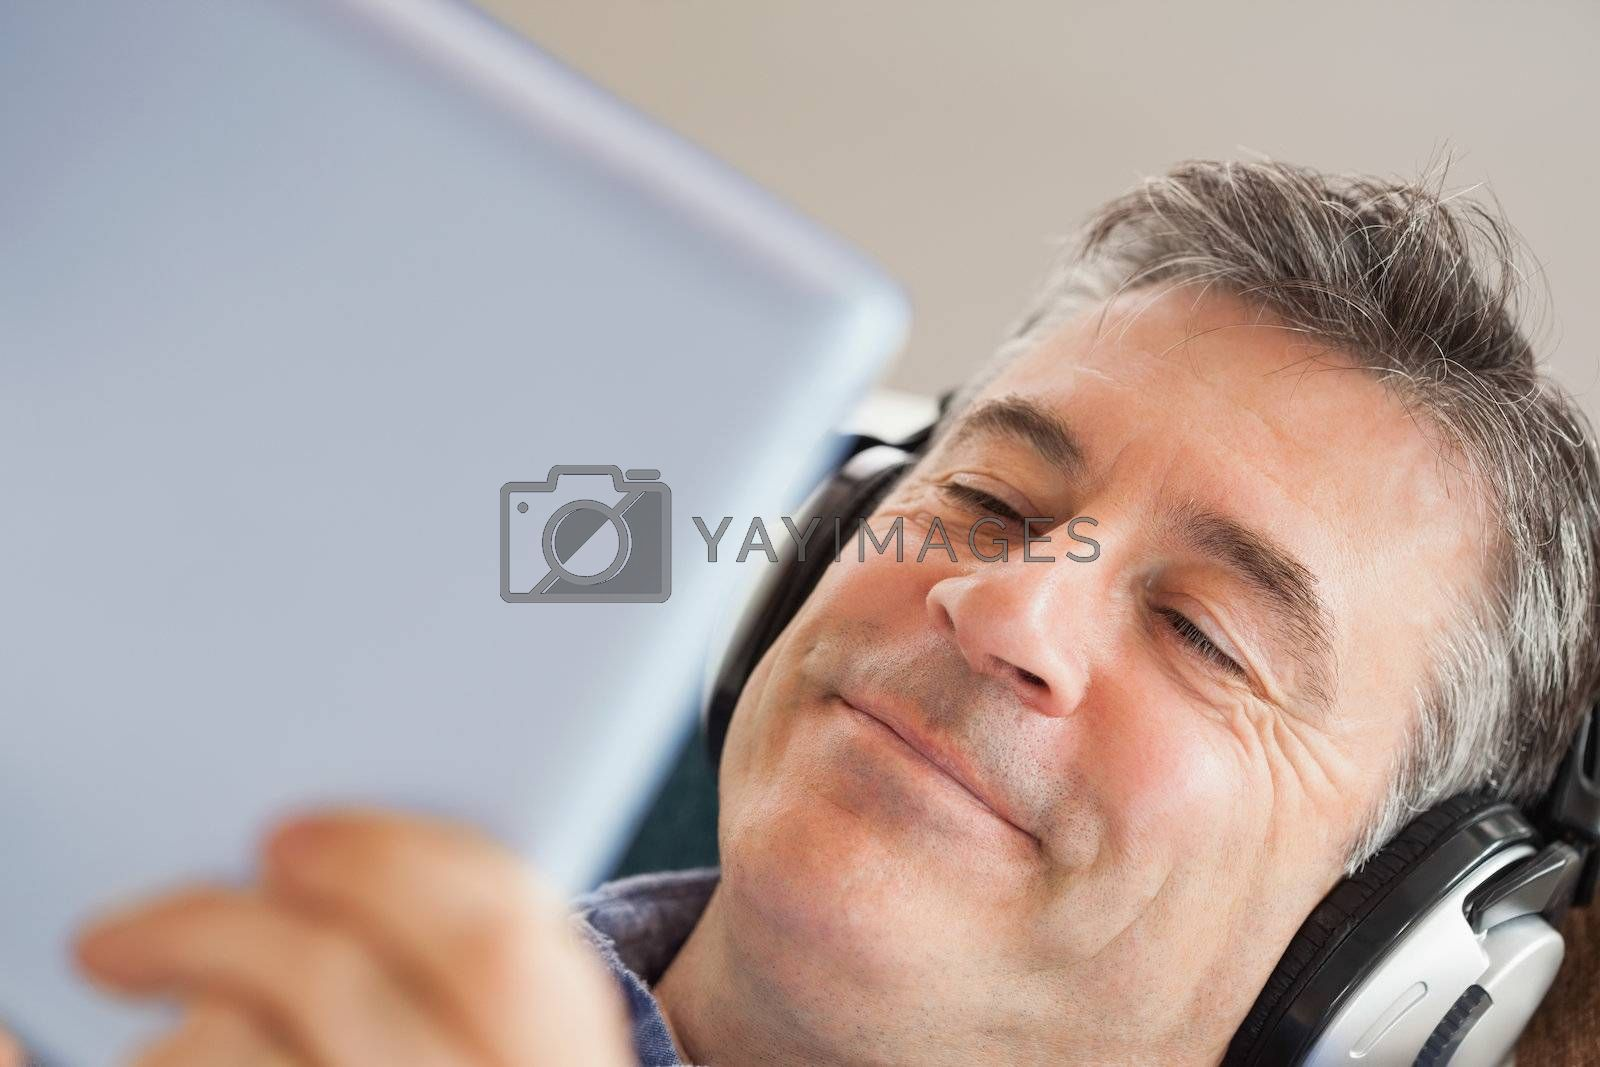 Smiling man listening music and using a tablet pc by Wavebreakmedia